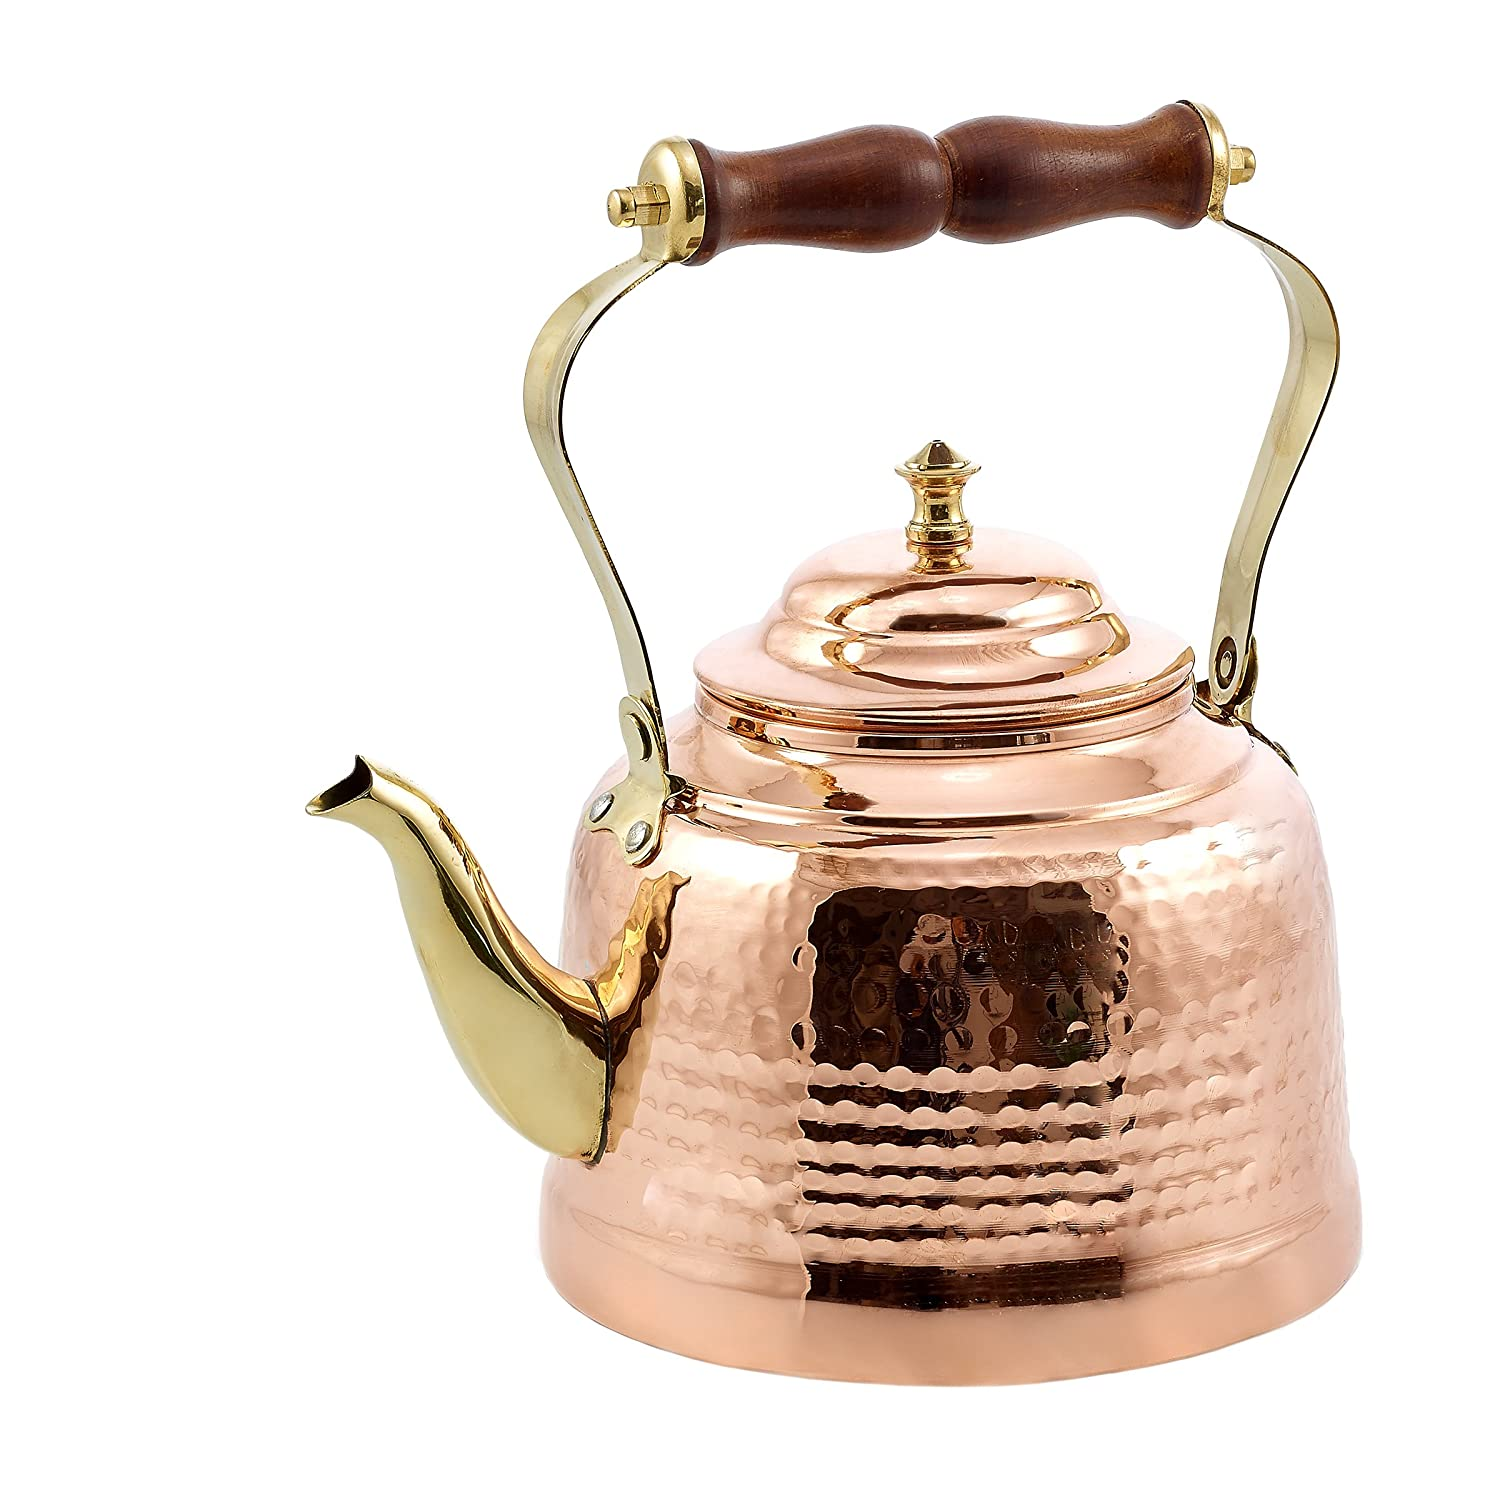 Old Dutch 1869 Hammered Tea Kettle with Brass Spout and Knob and Wooden Handle, 2 qt., Copper